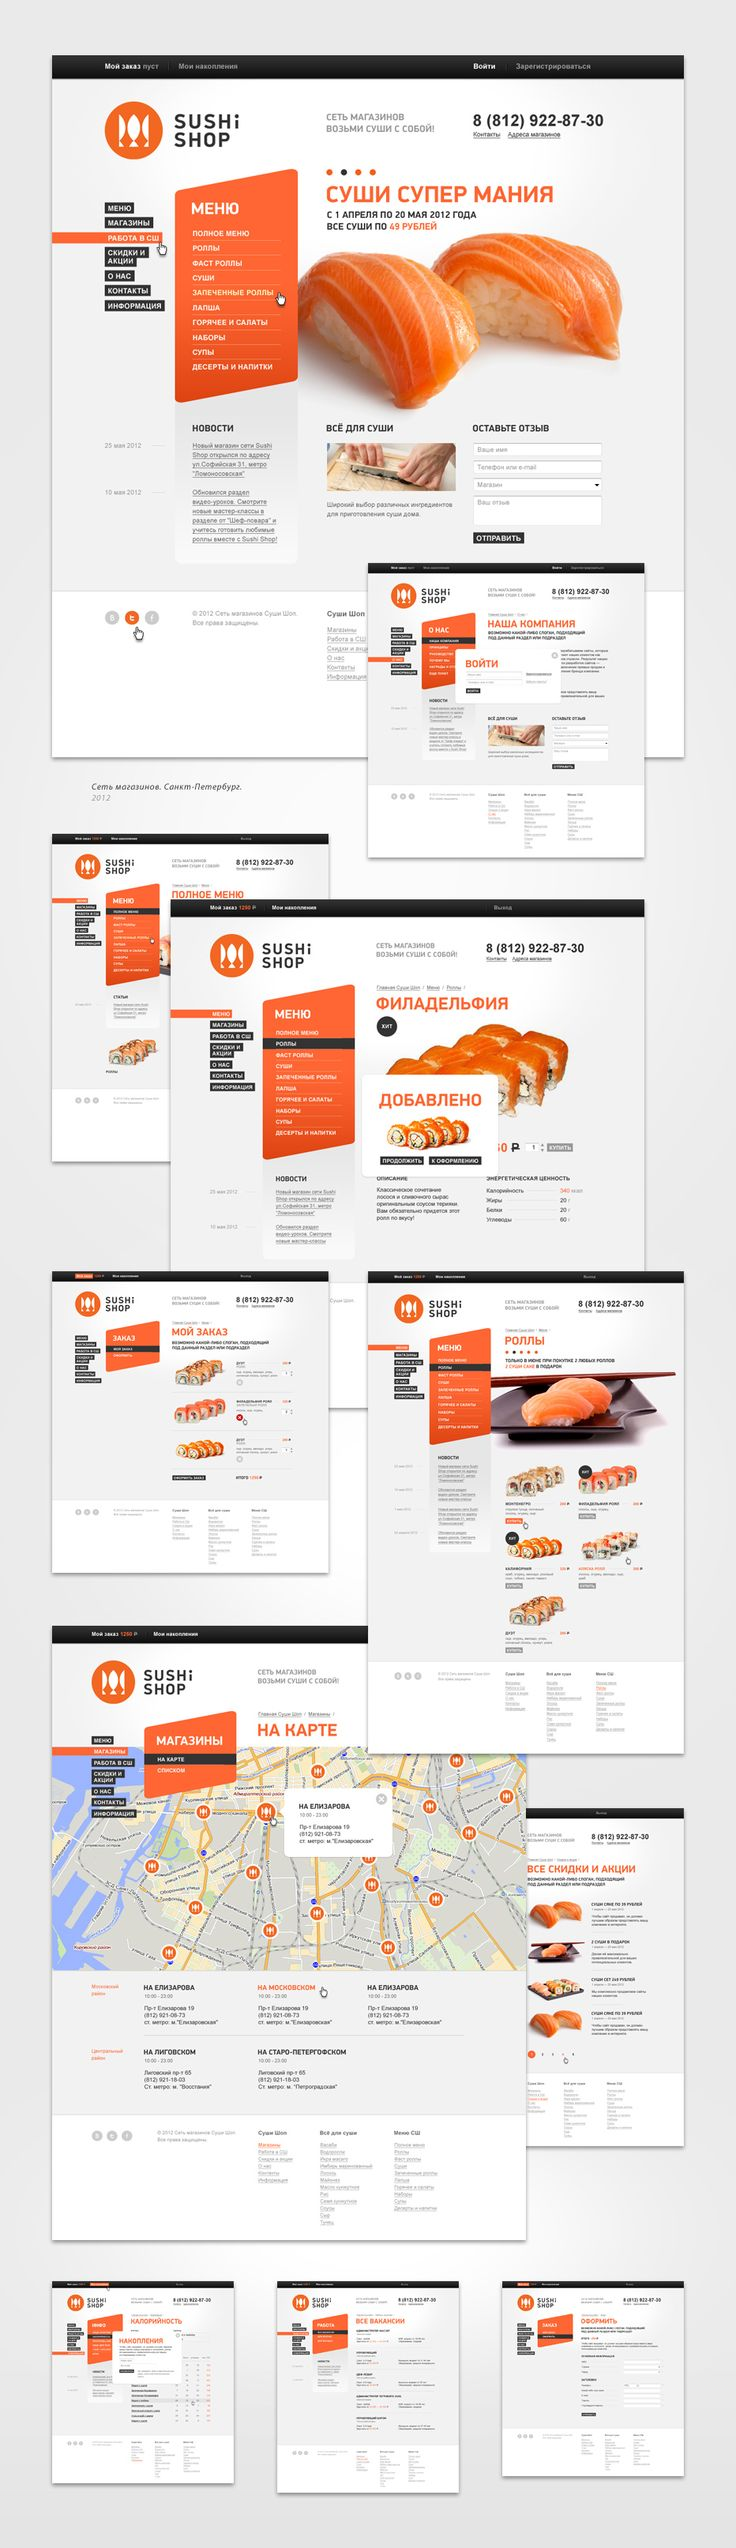 Sushi Shop #webdesign #inspiration #layout